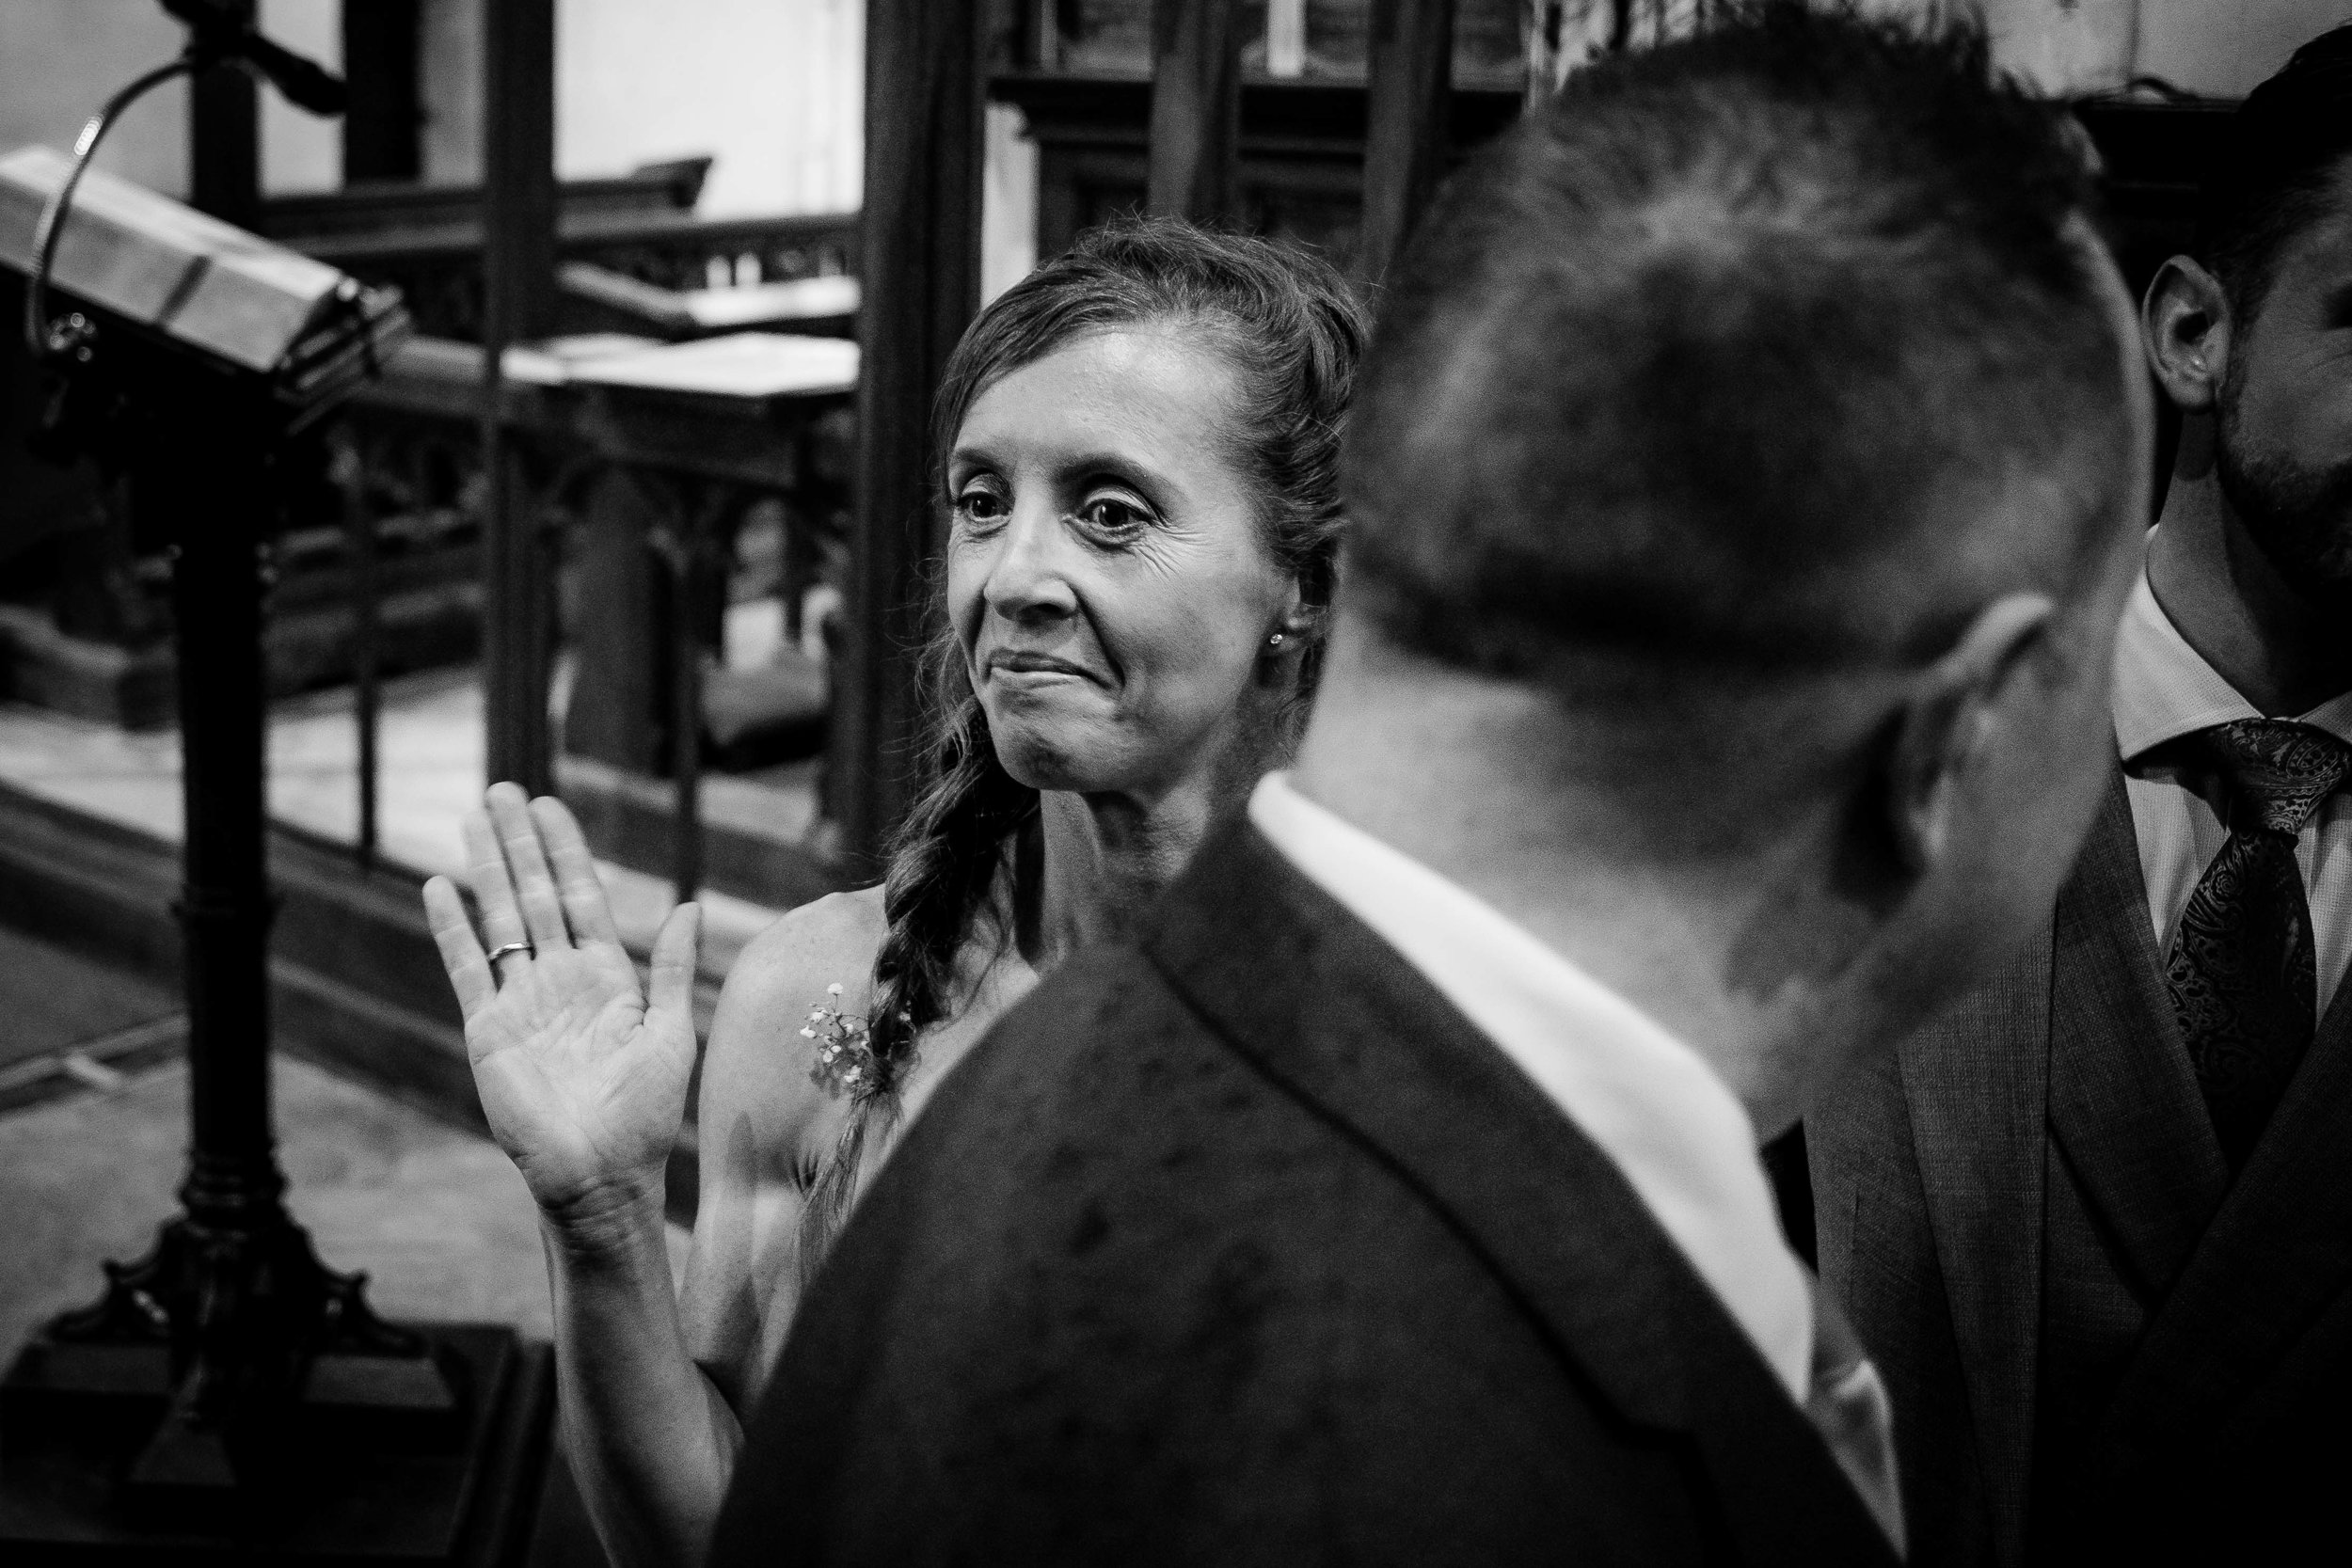 Salisbury wedding photography (76 of 250).jpg